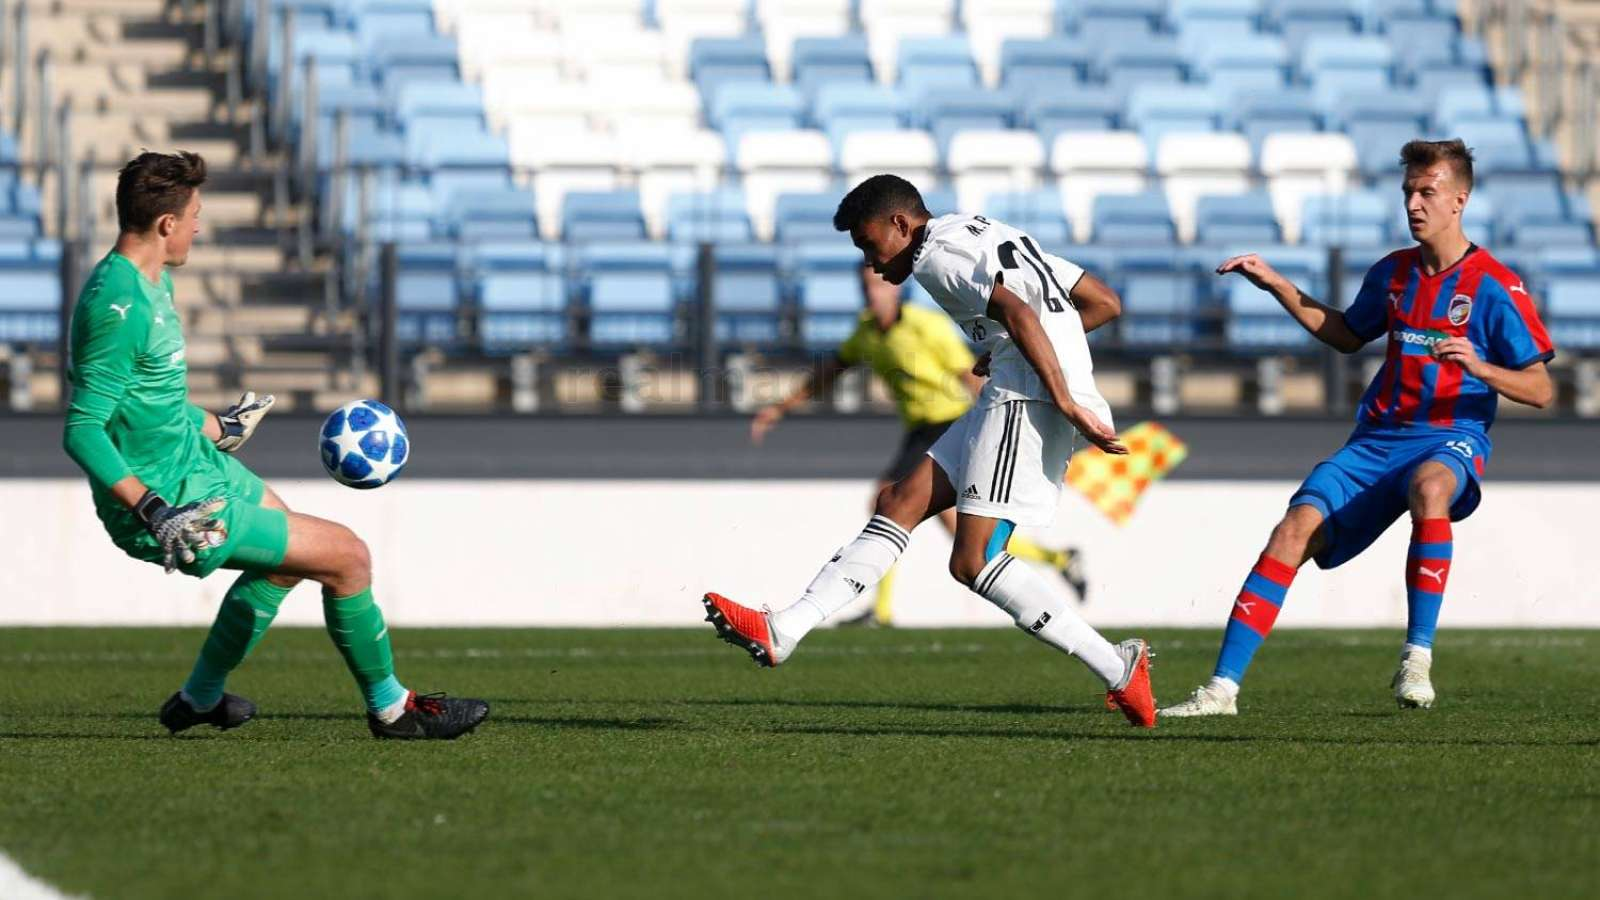 Akinlabi Seeks Revival, After Goal In Castilla's 2-1 Defeat By Racing Ferrol